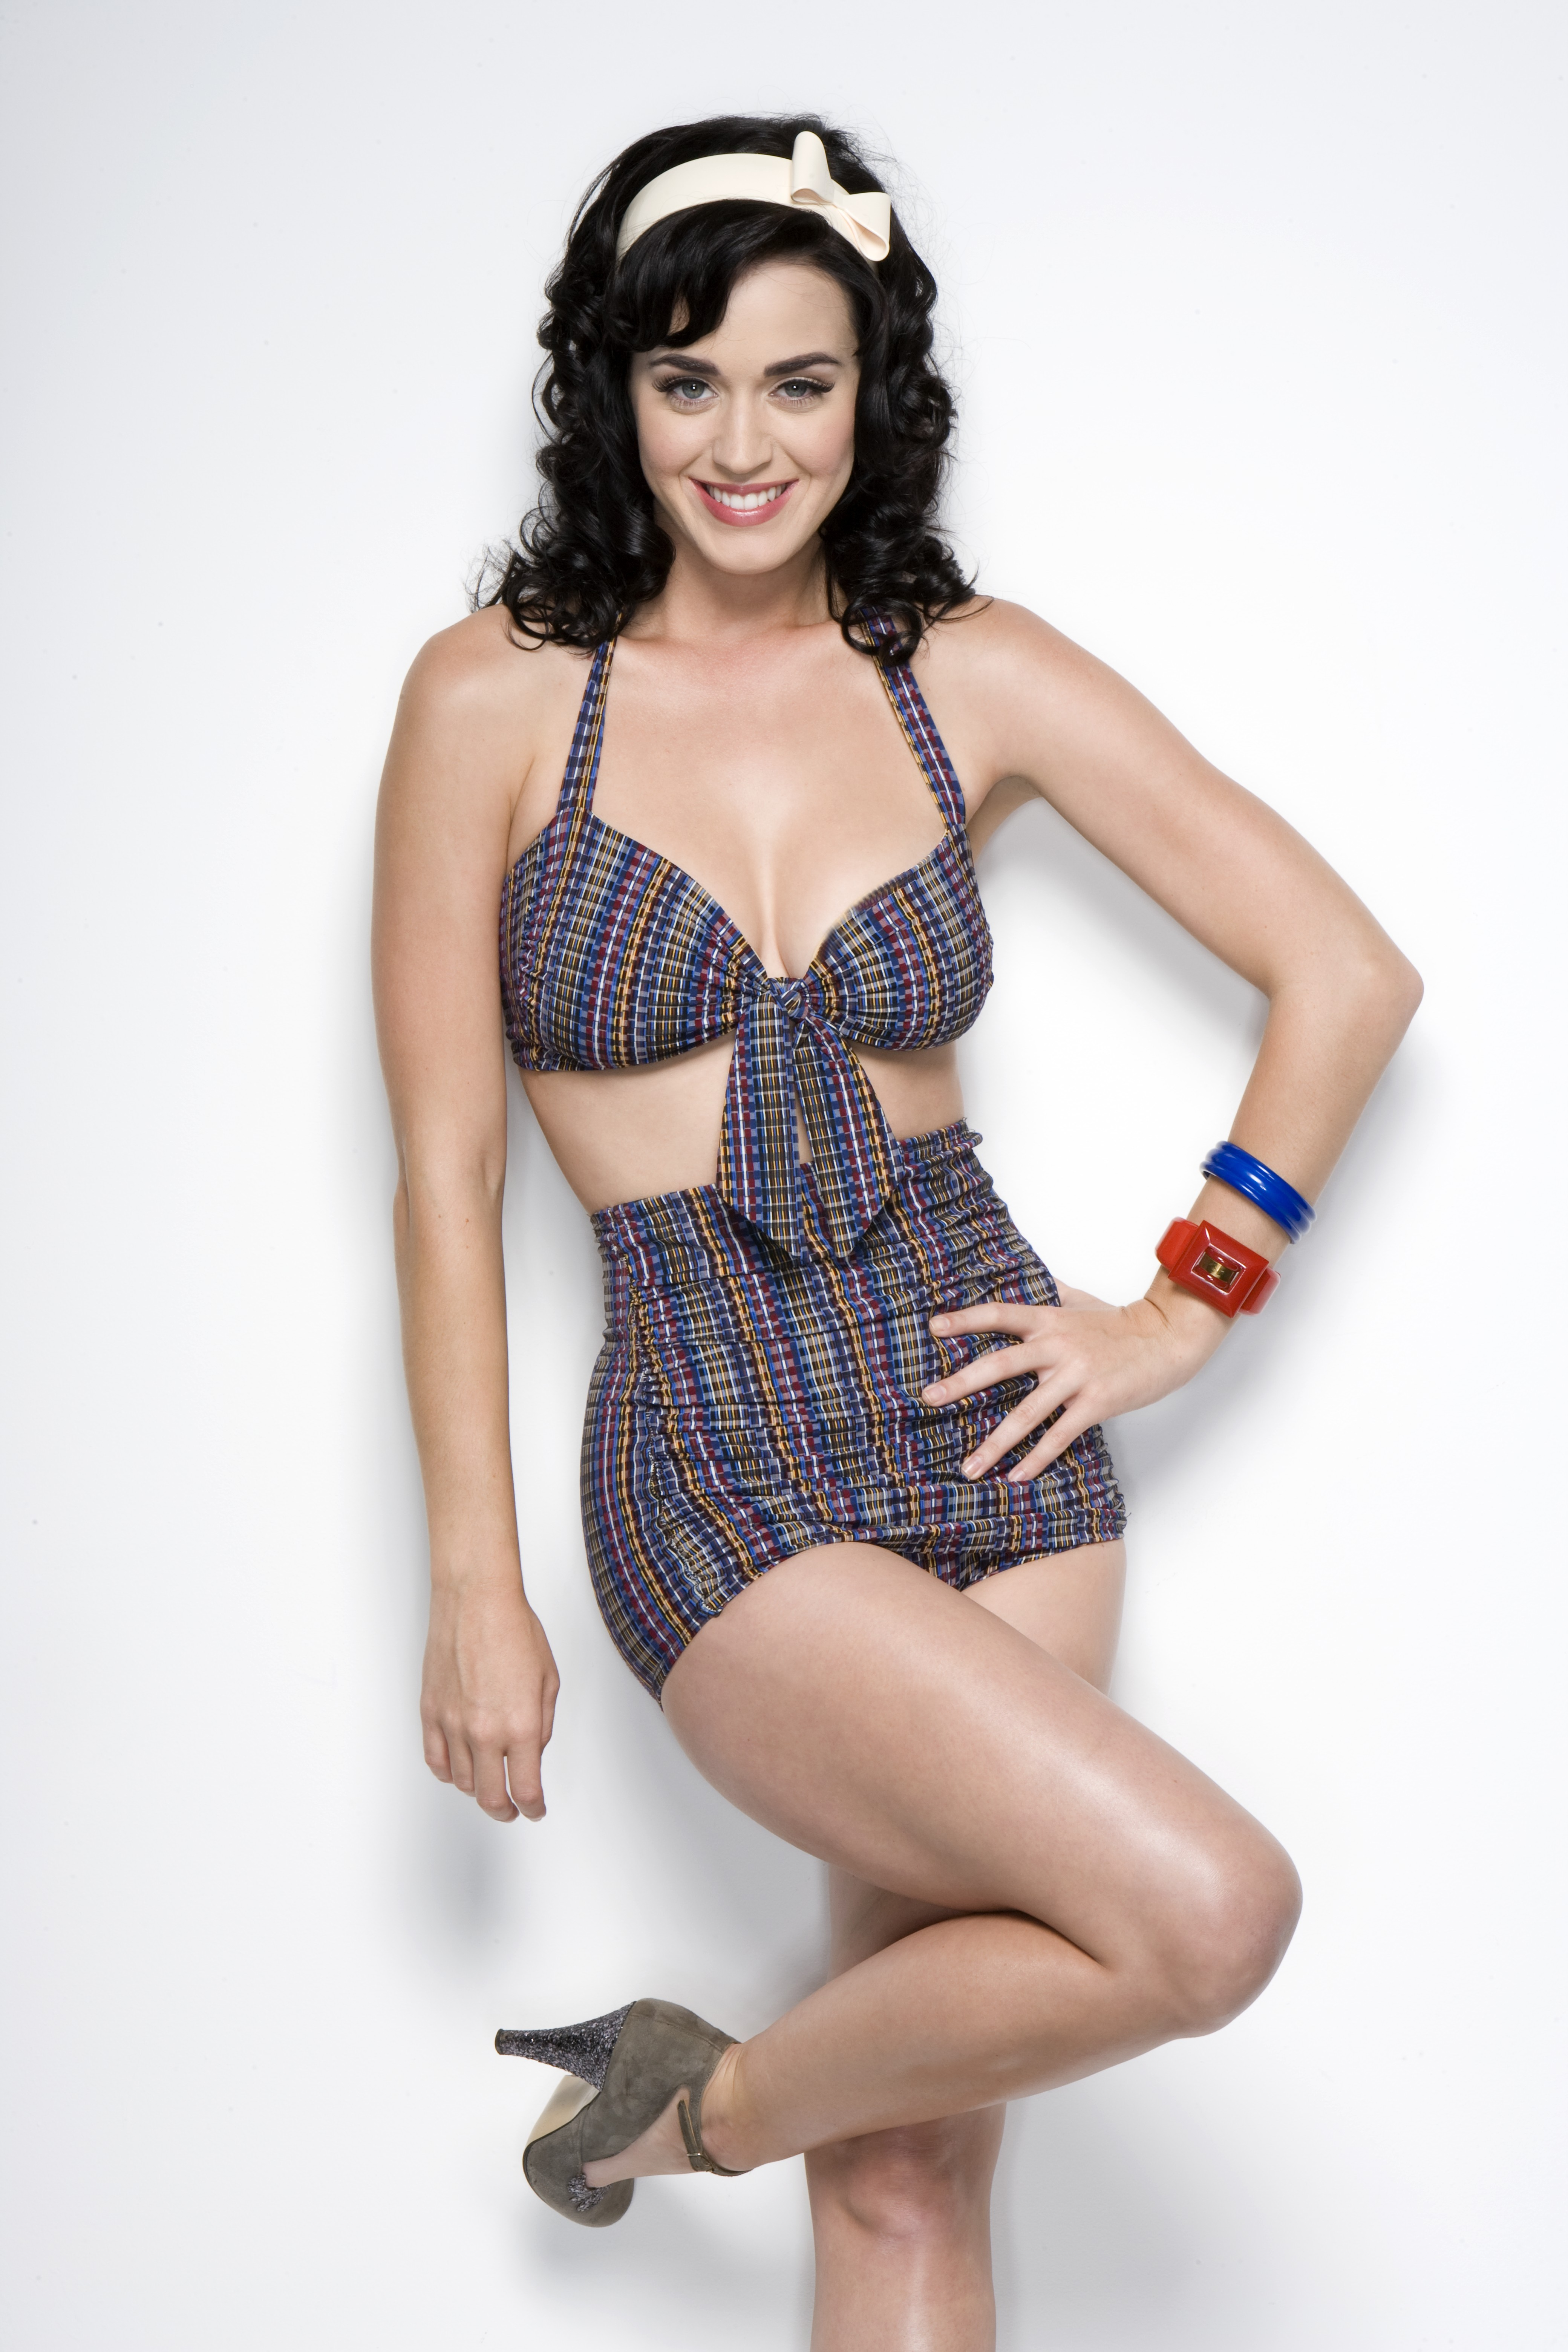 Katy Perry Hot Photo Shoot Collections